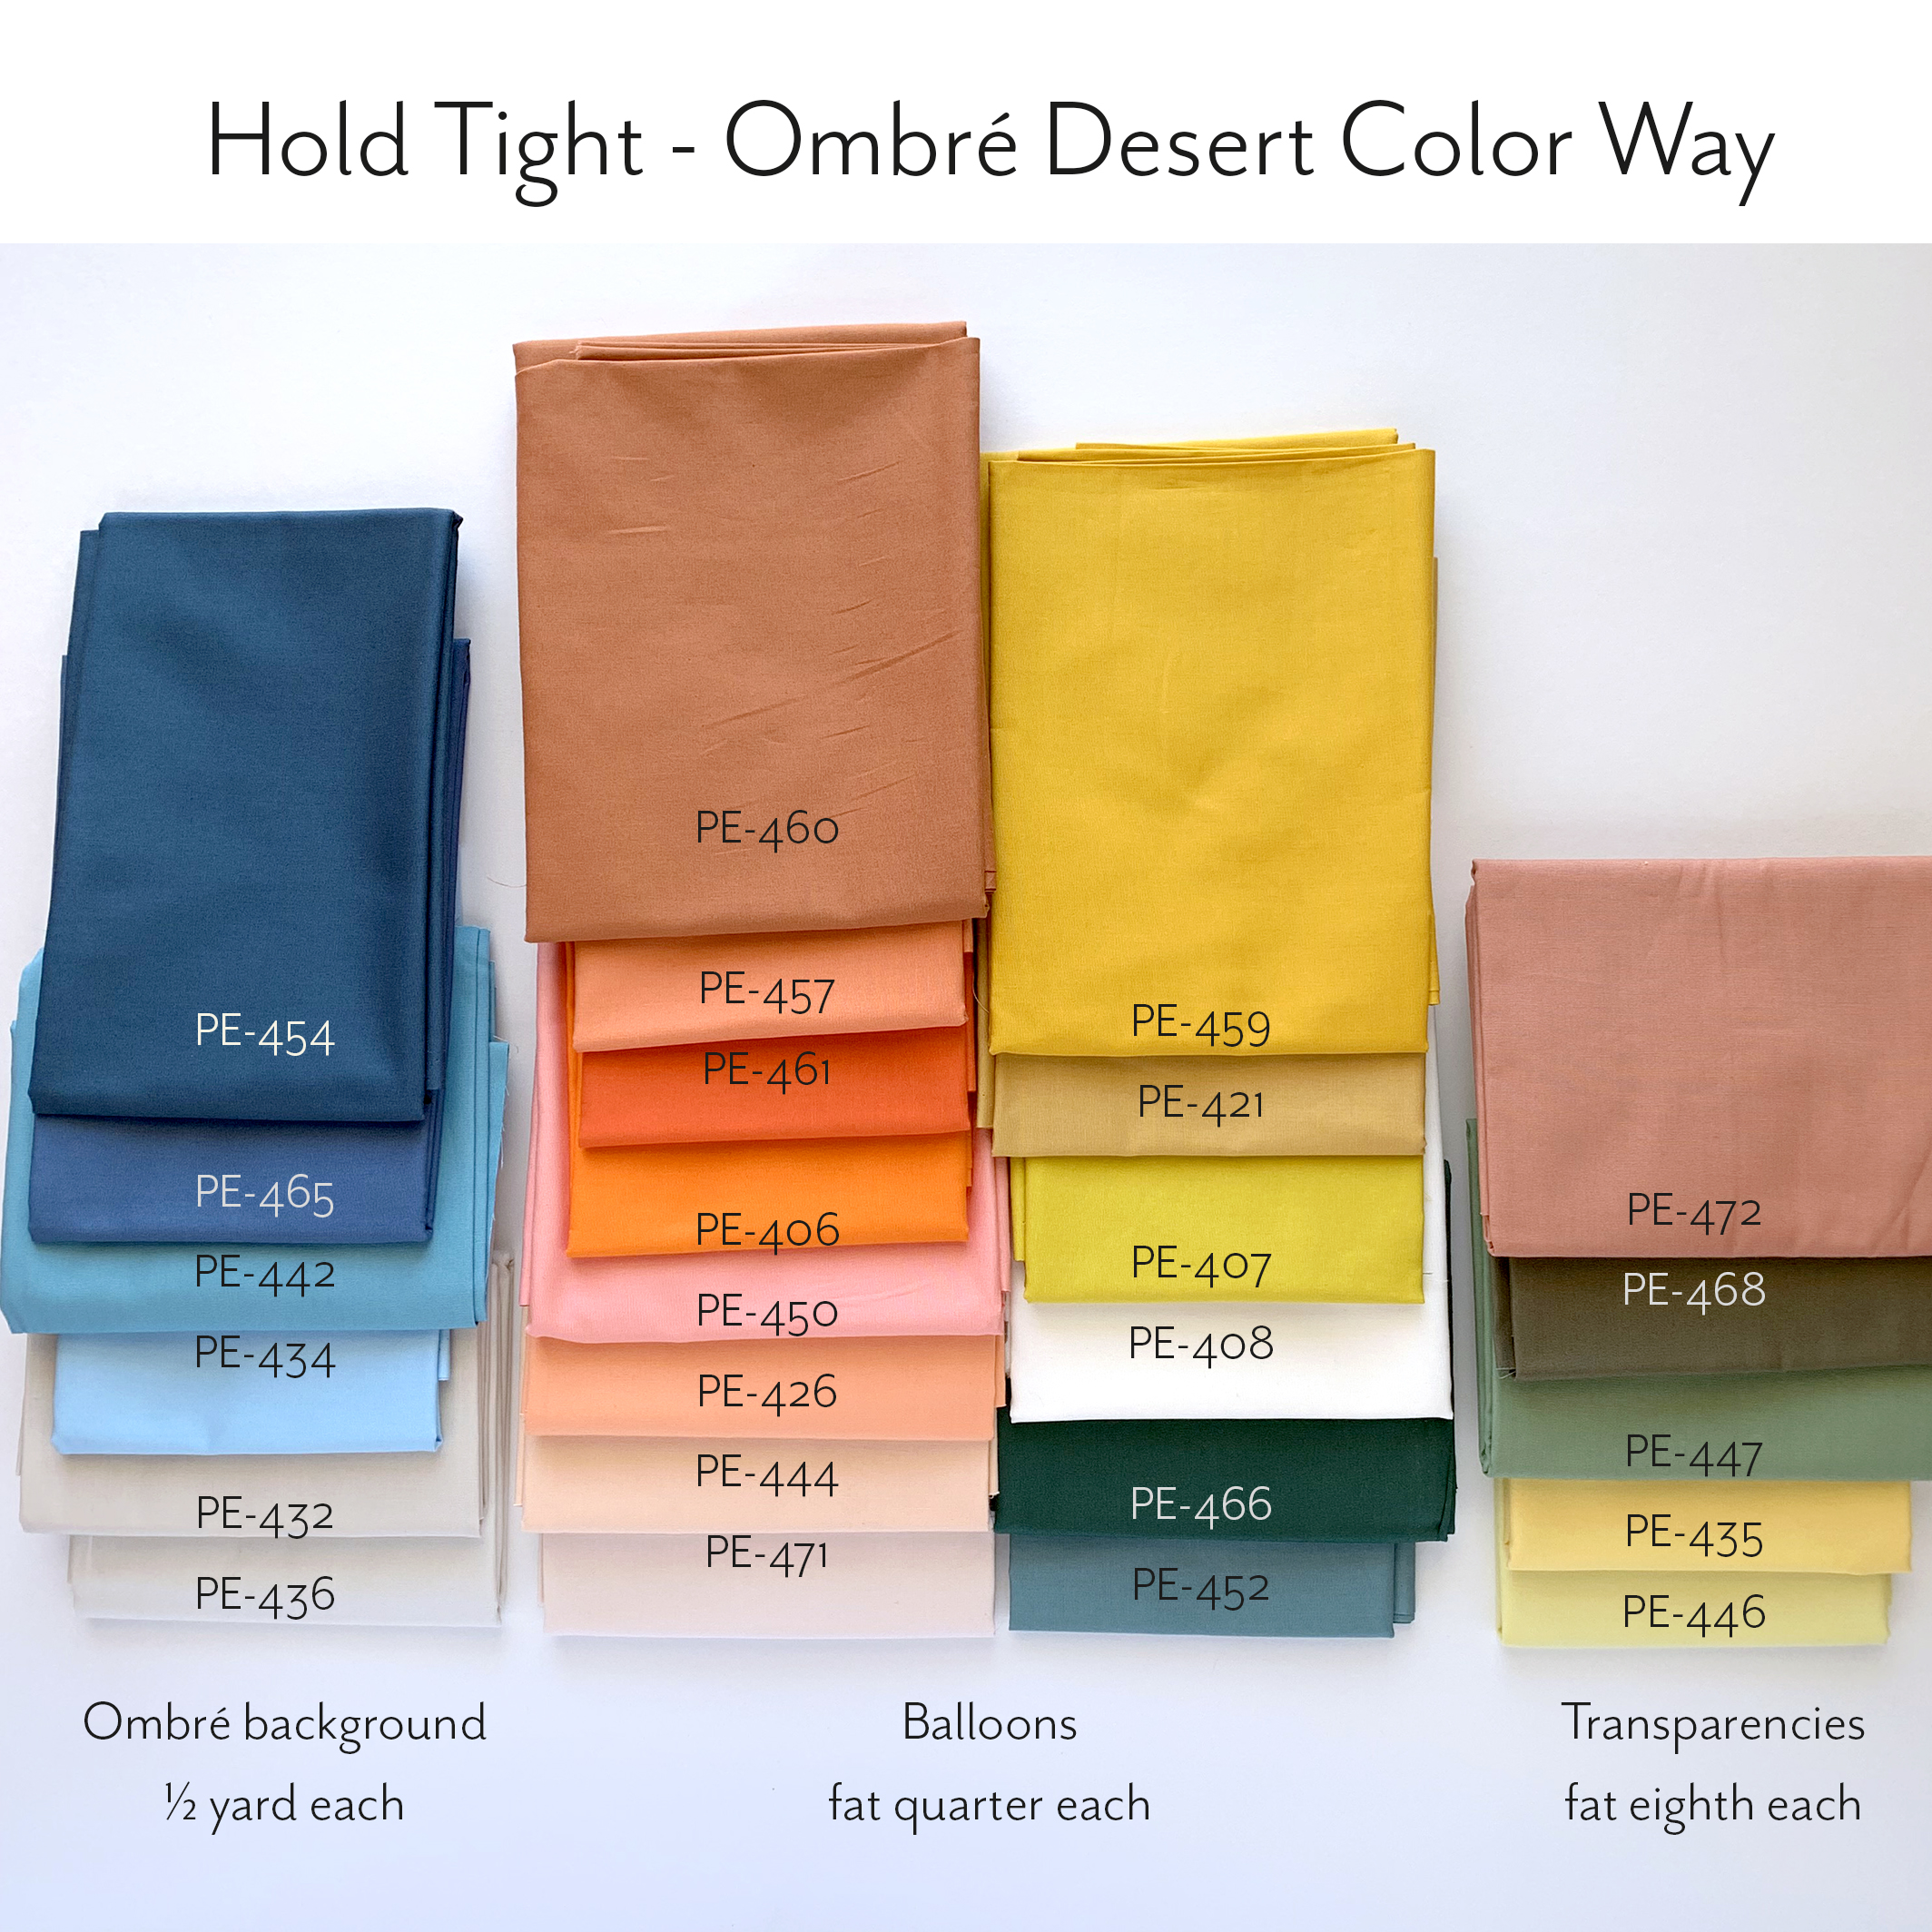 Hold Tight - Ombré Desert Color Way List.jpg